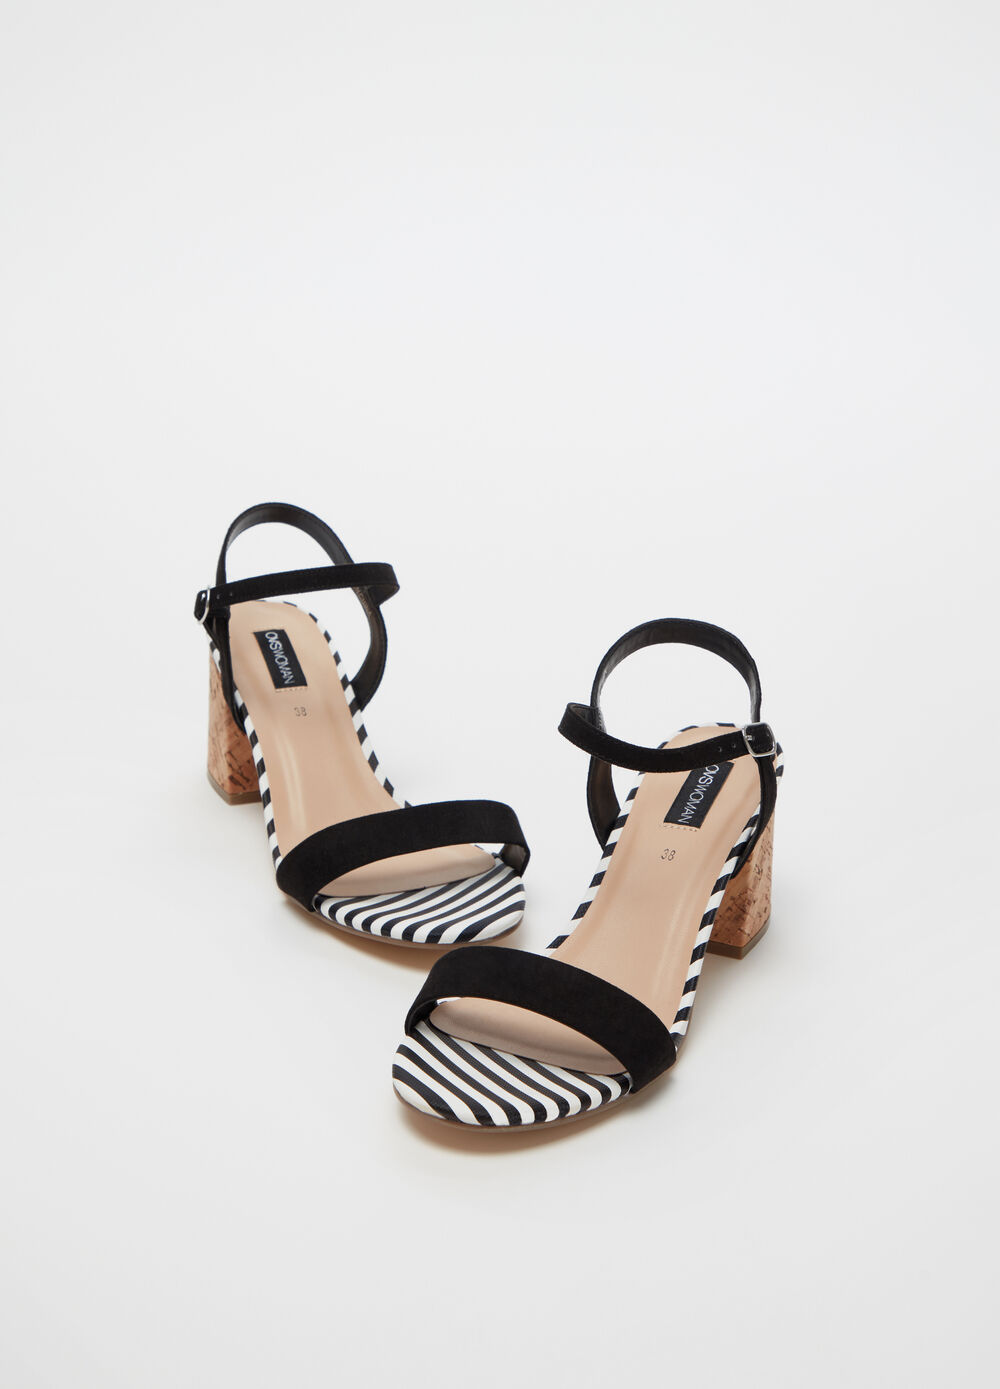 Sandals with flat chunky heel and strap